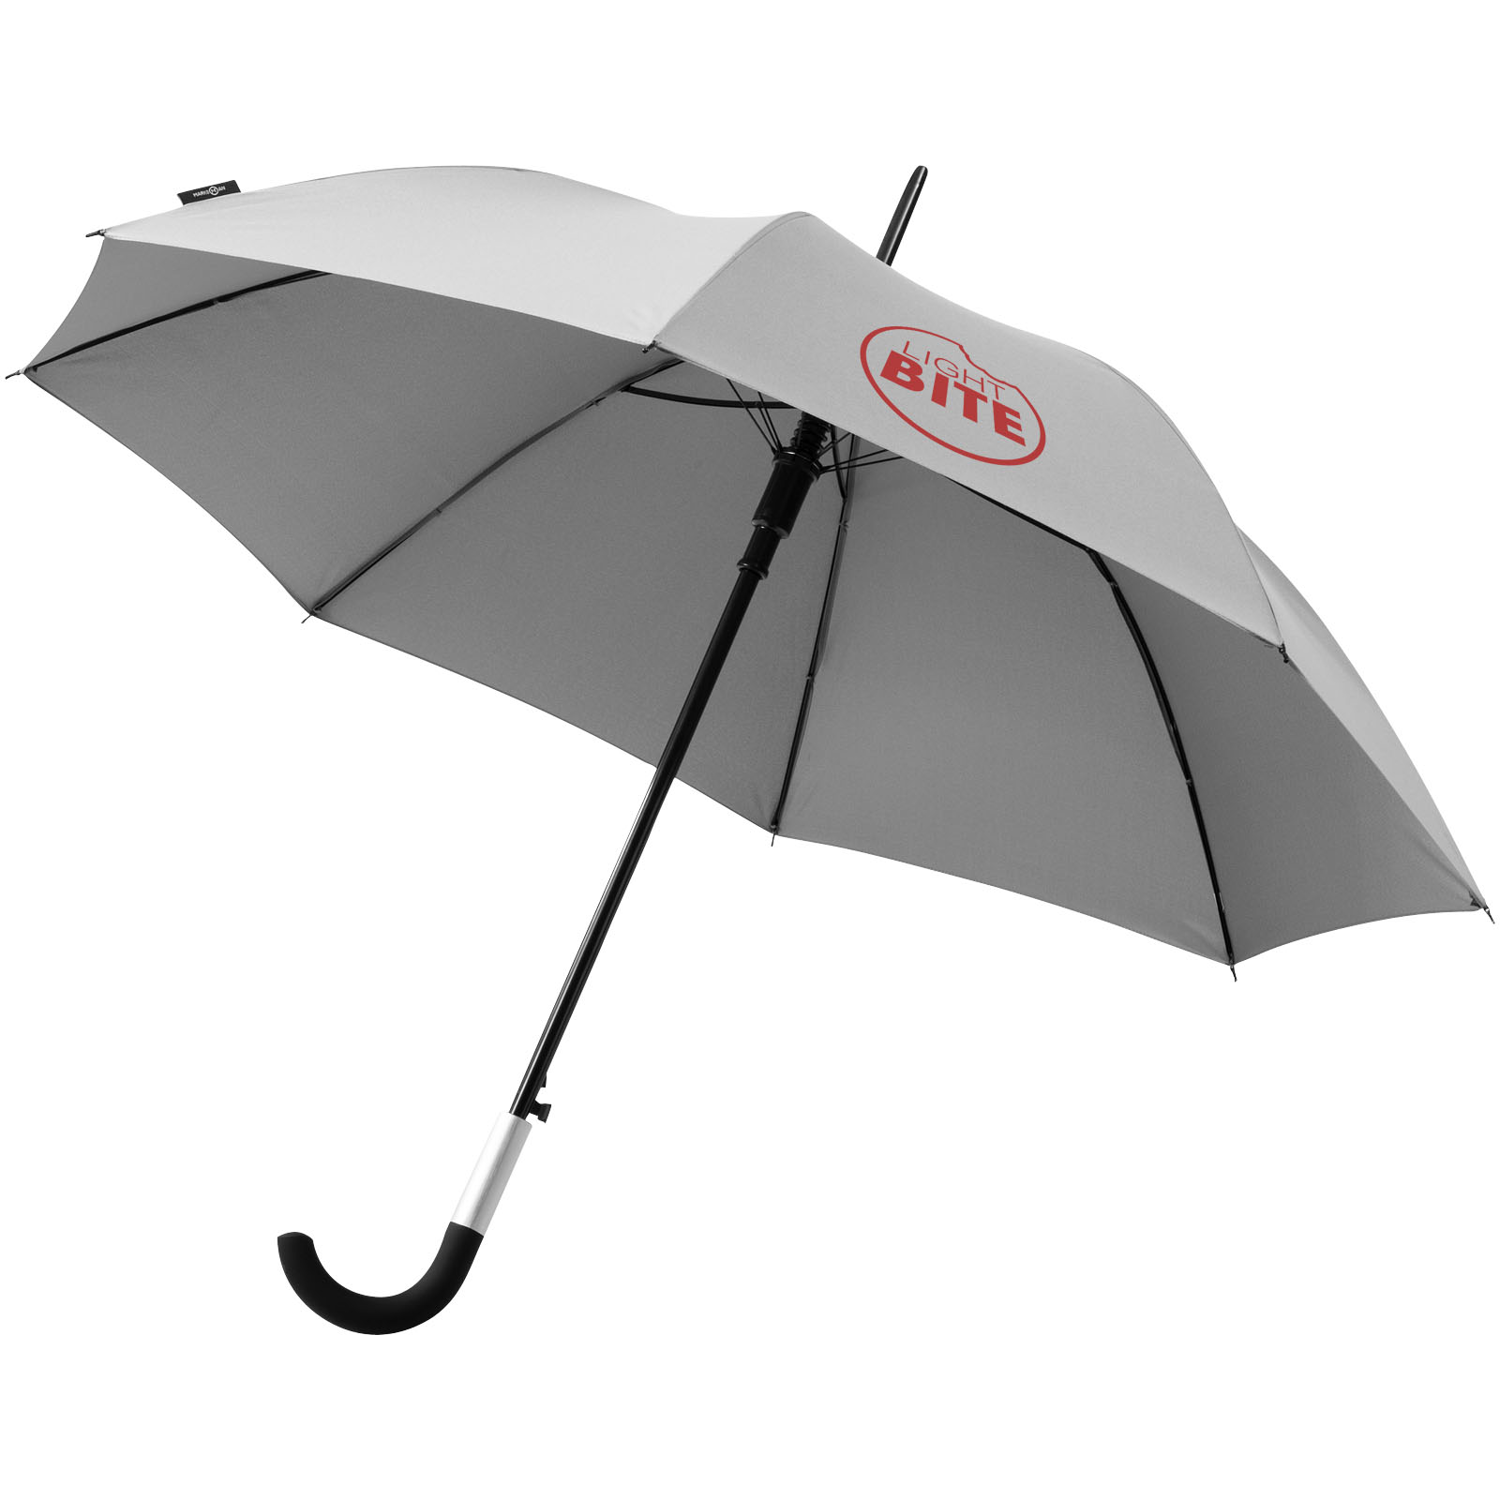 Arch 23Inch Auto Open Umbrella